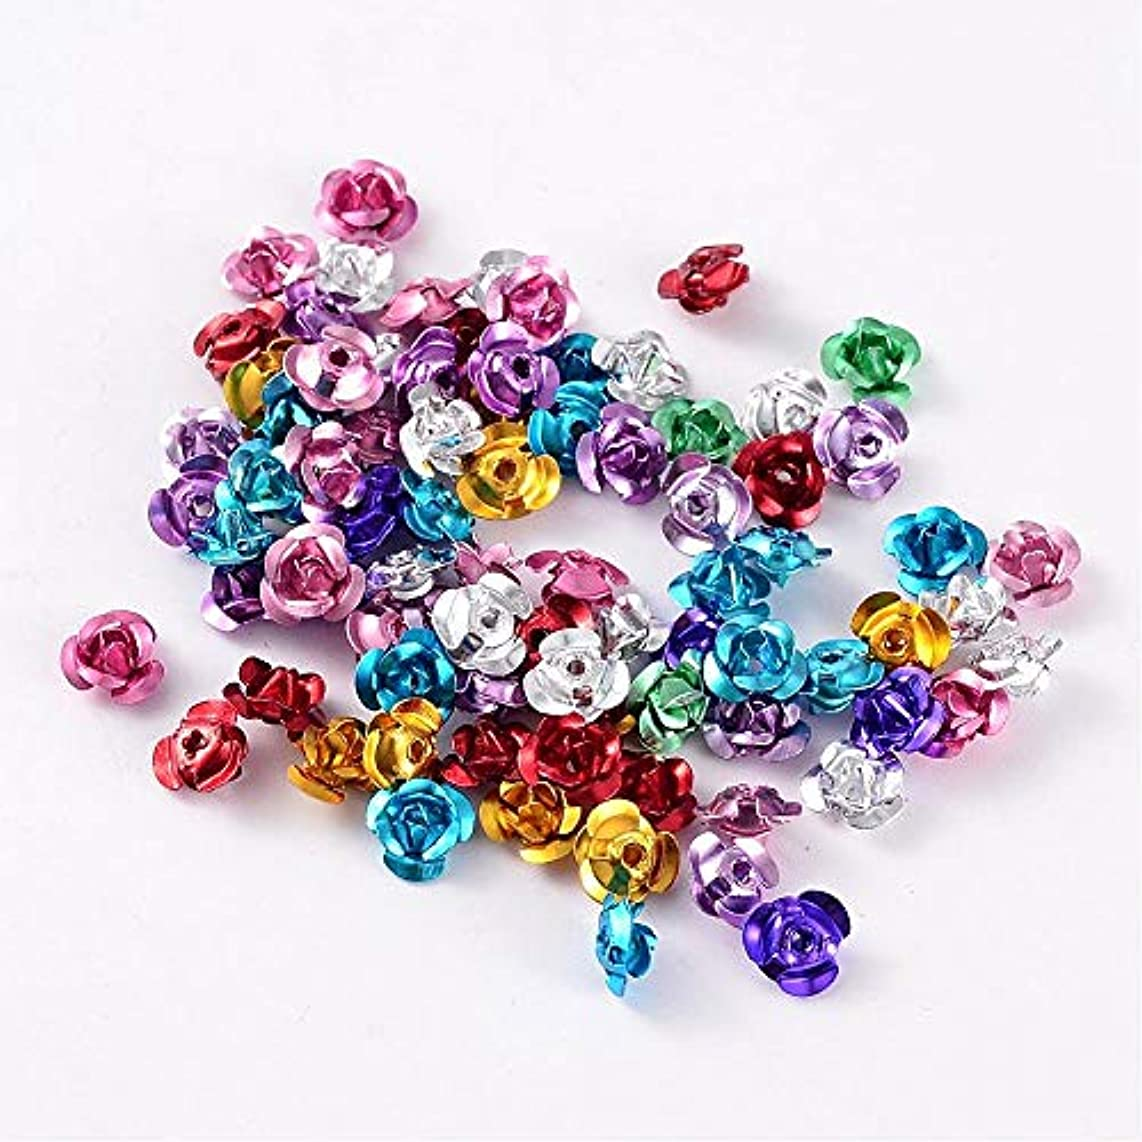 PEPPERLONELY Brand 200PC Mixed Color Aluminum Rose Flower Tiny Metal Beads 6mmx4.5mm